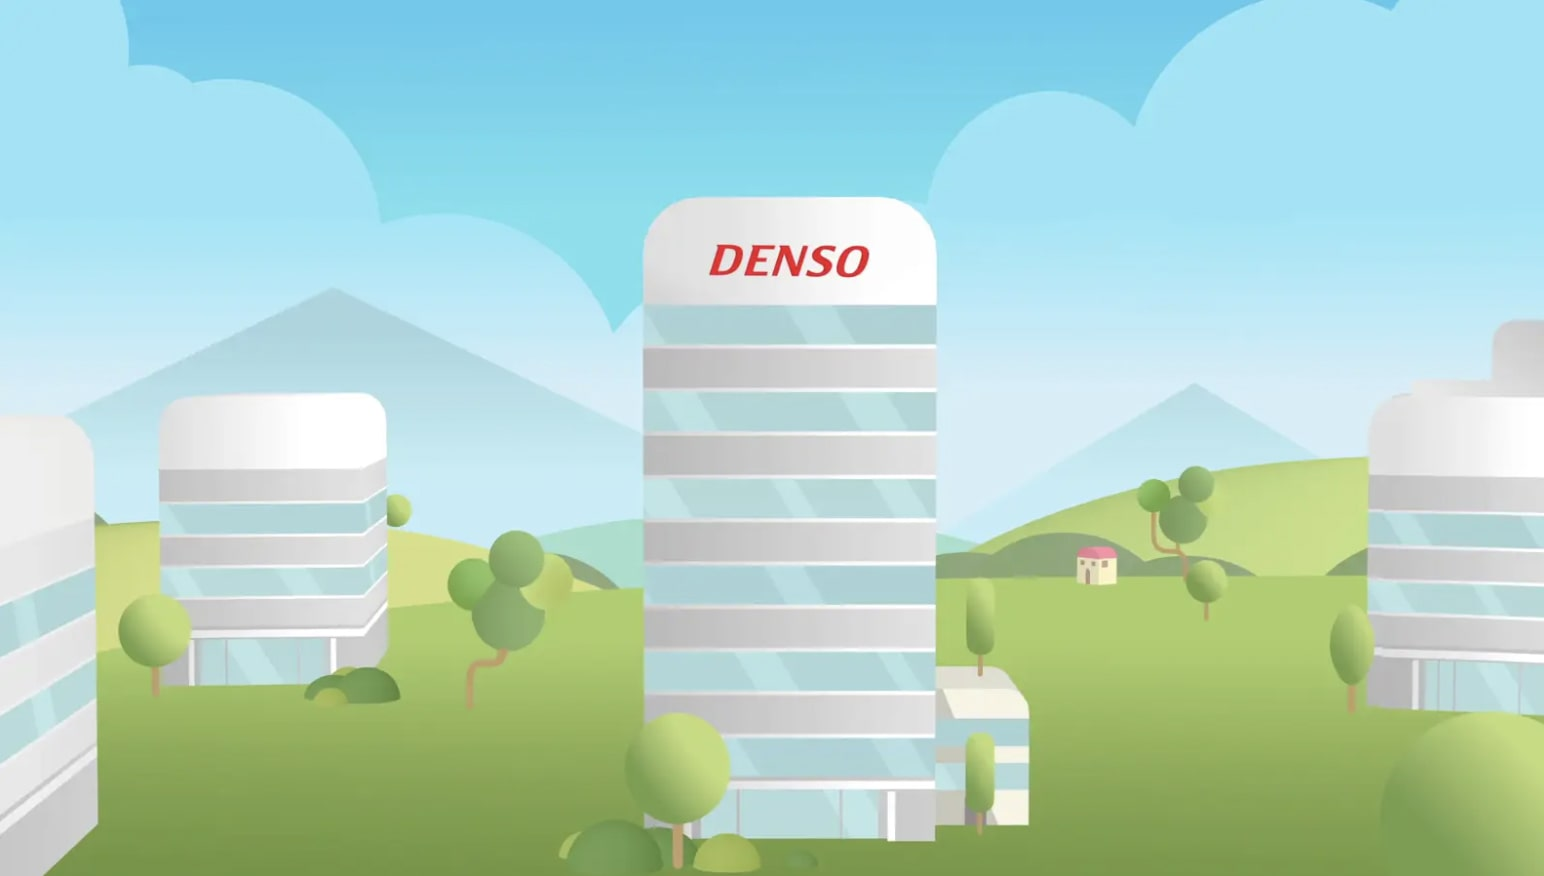 First Animation DENSO Eco Vision 2025